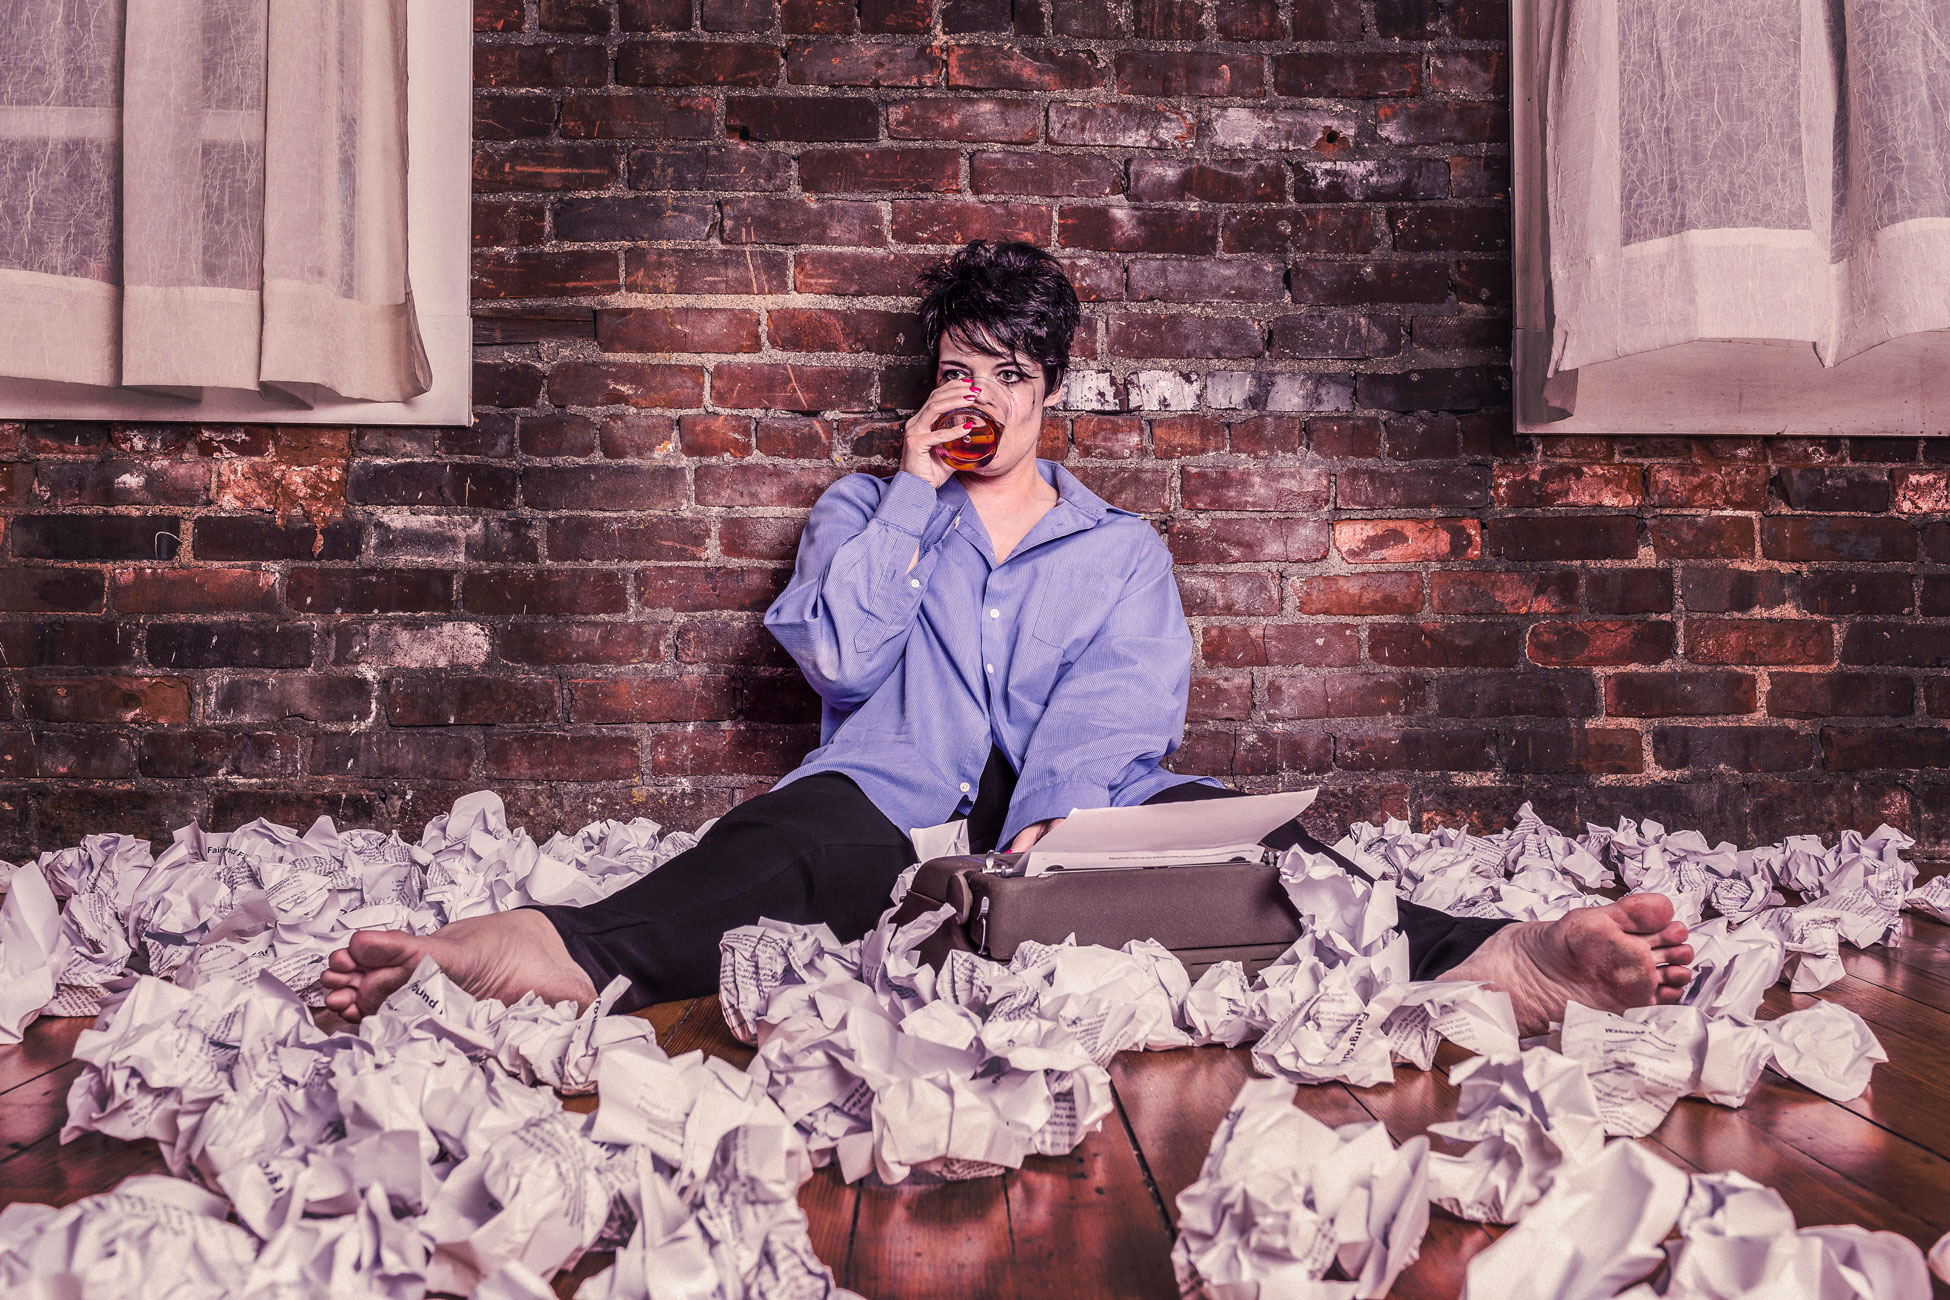 journalist sitting on floor surrounded by paper wads